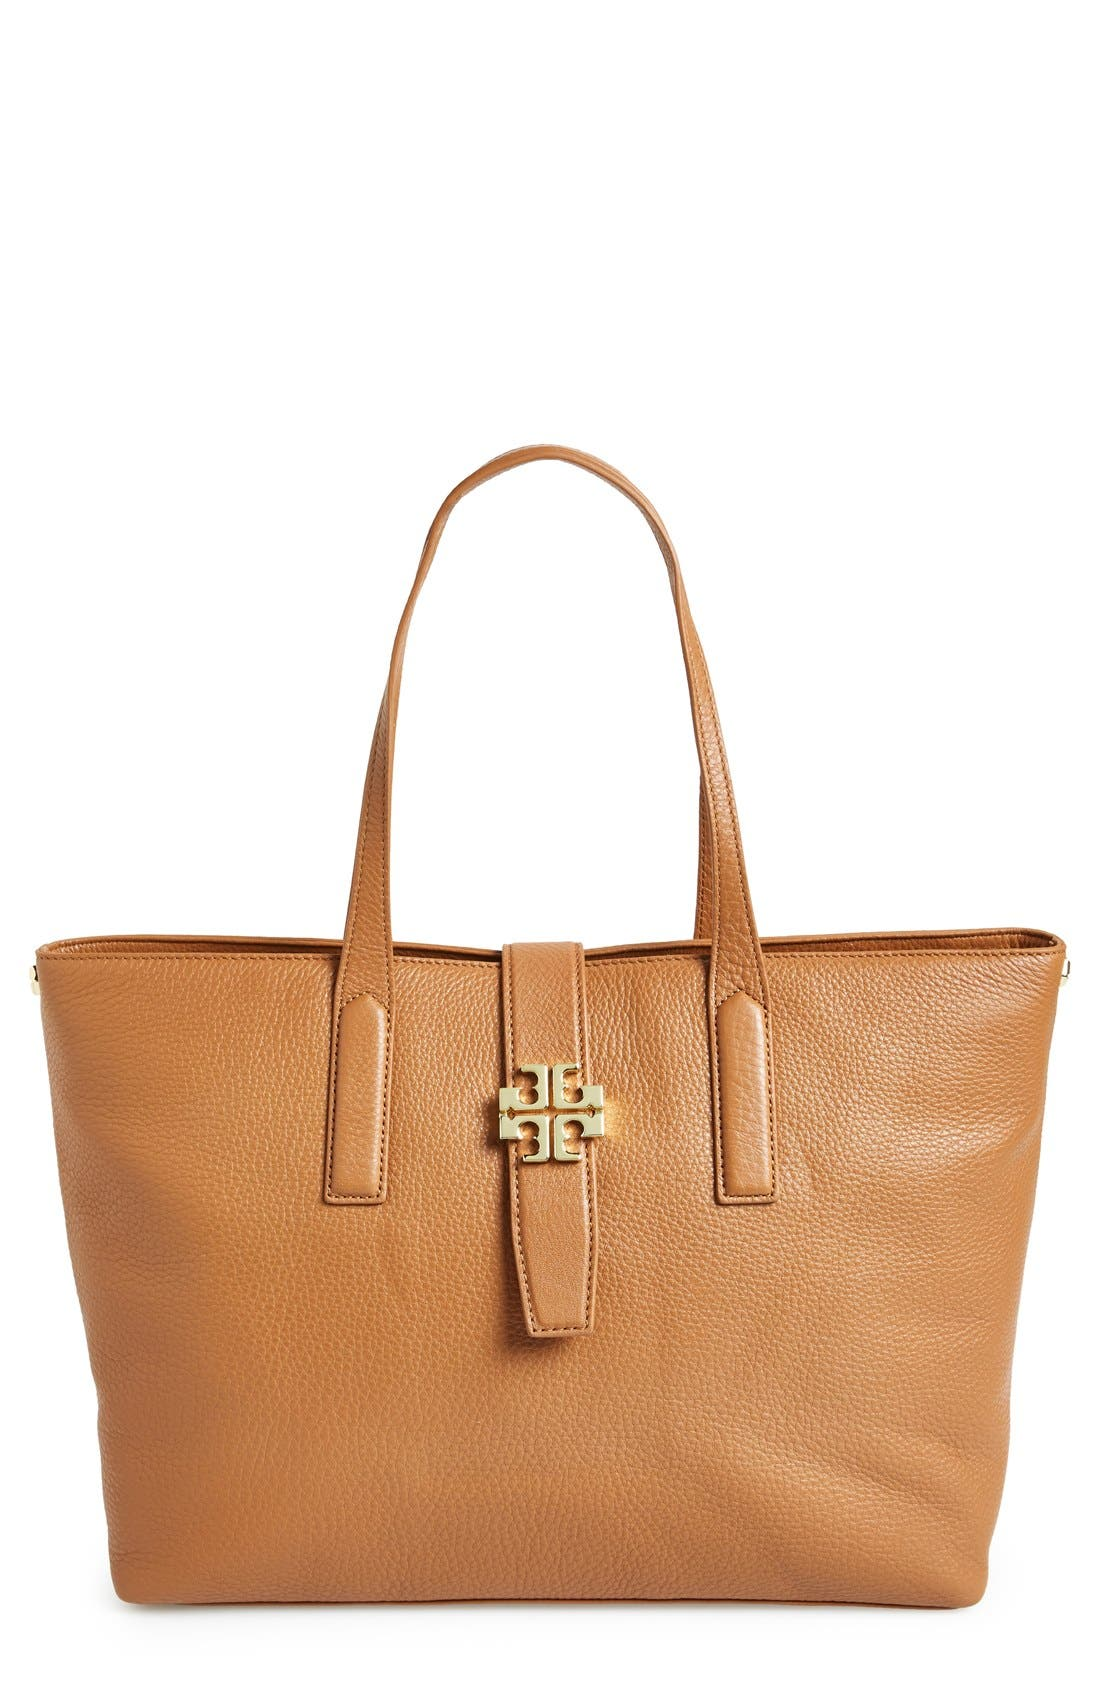 Alternate Image 1 Selected - Tory Burch 'Plaque' Leather Tote